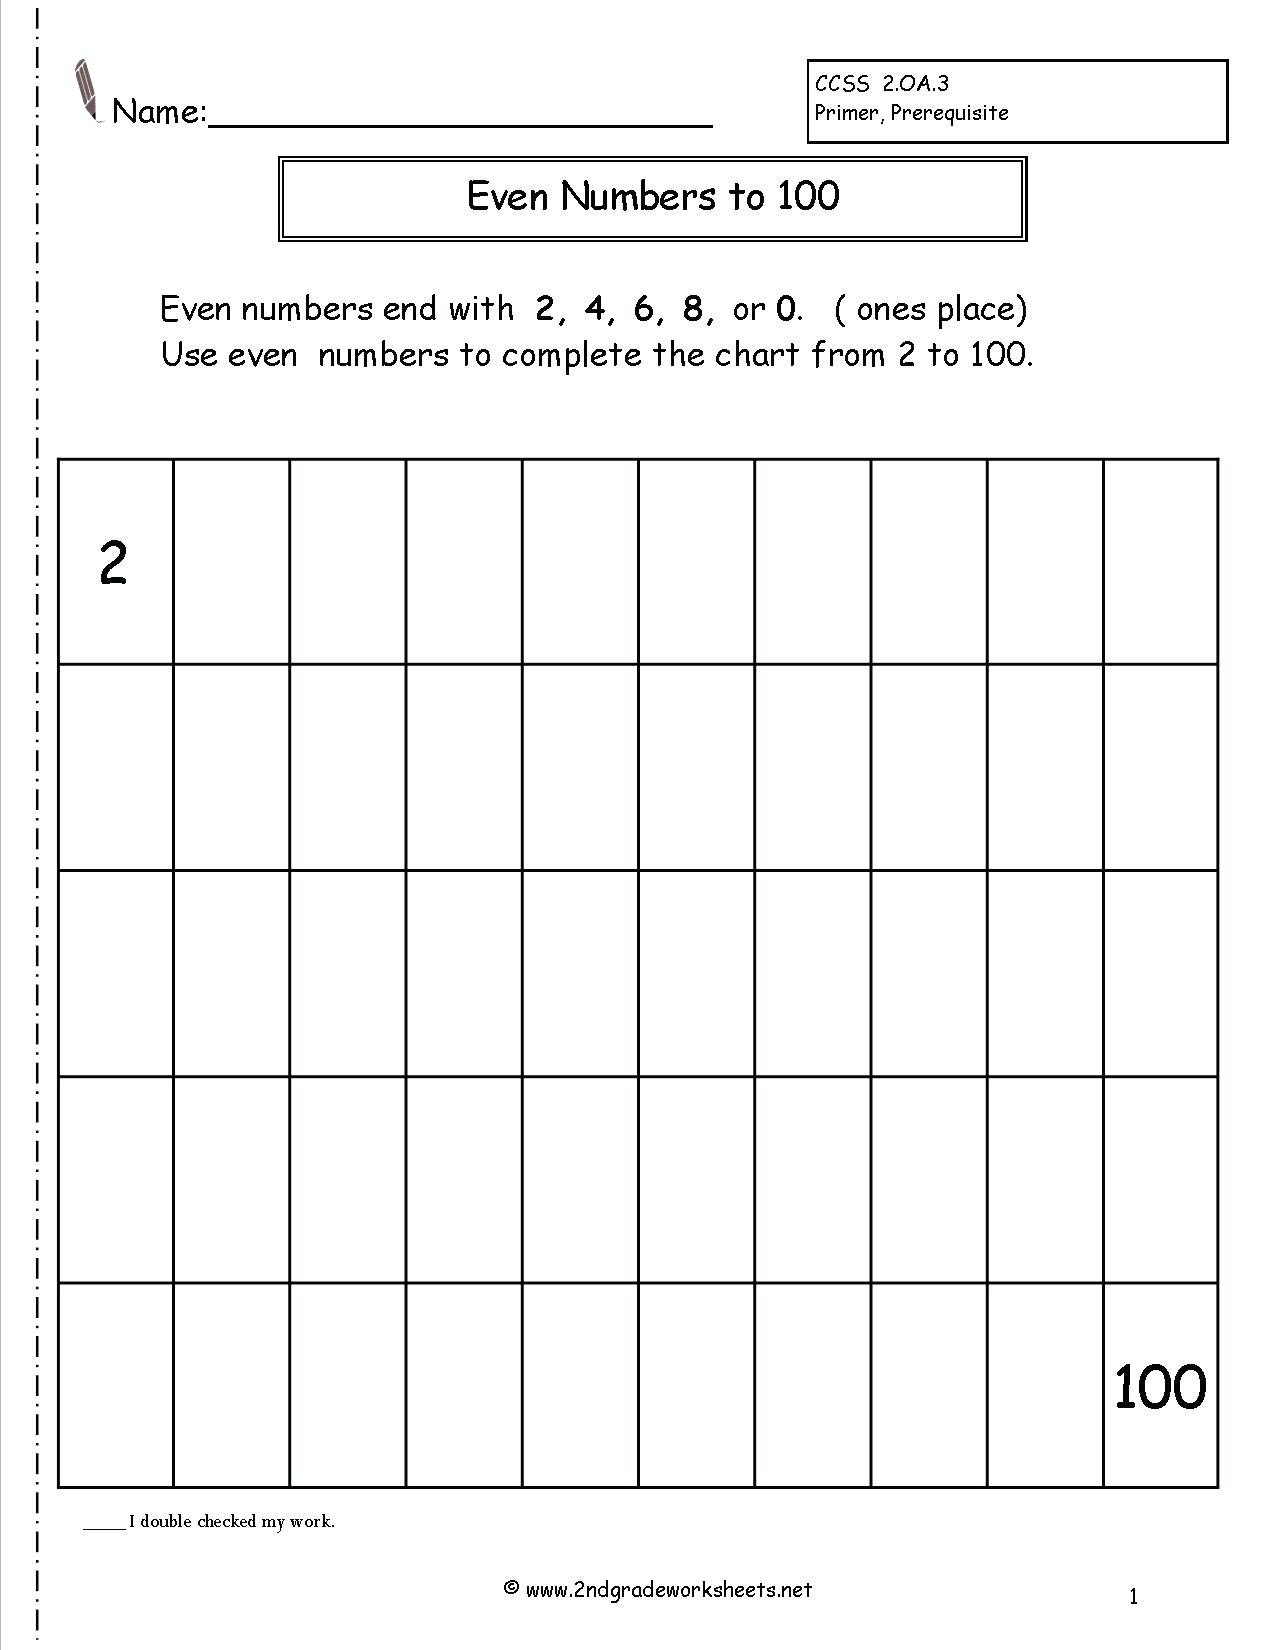 Doubles Worksheet First Grade Odd even Worksheet even Numbers Worksheet Odd and even